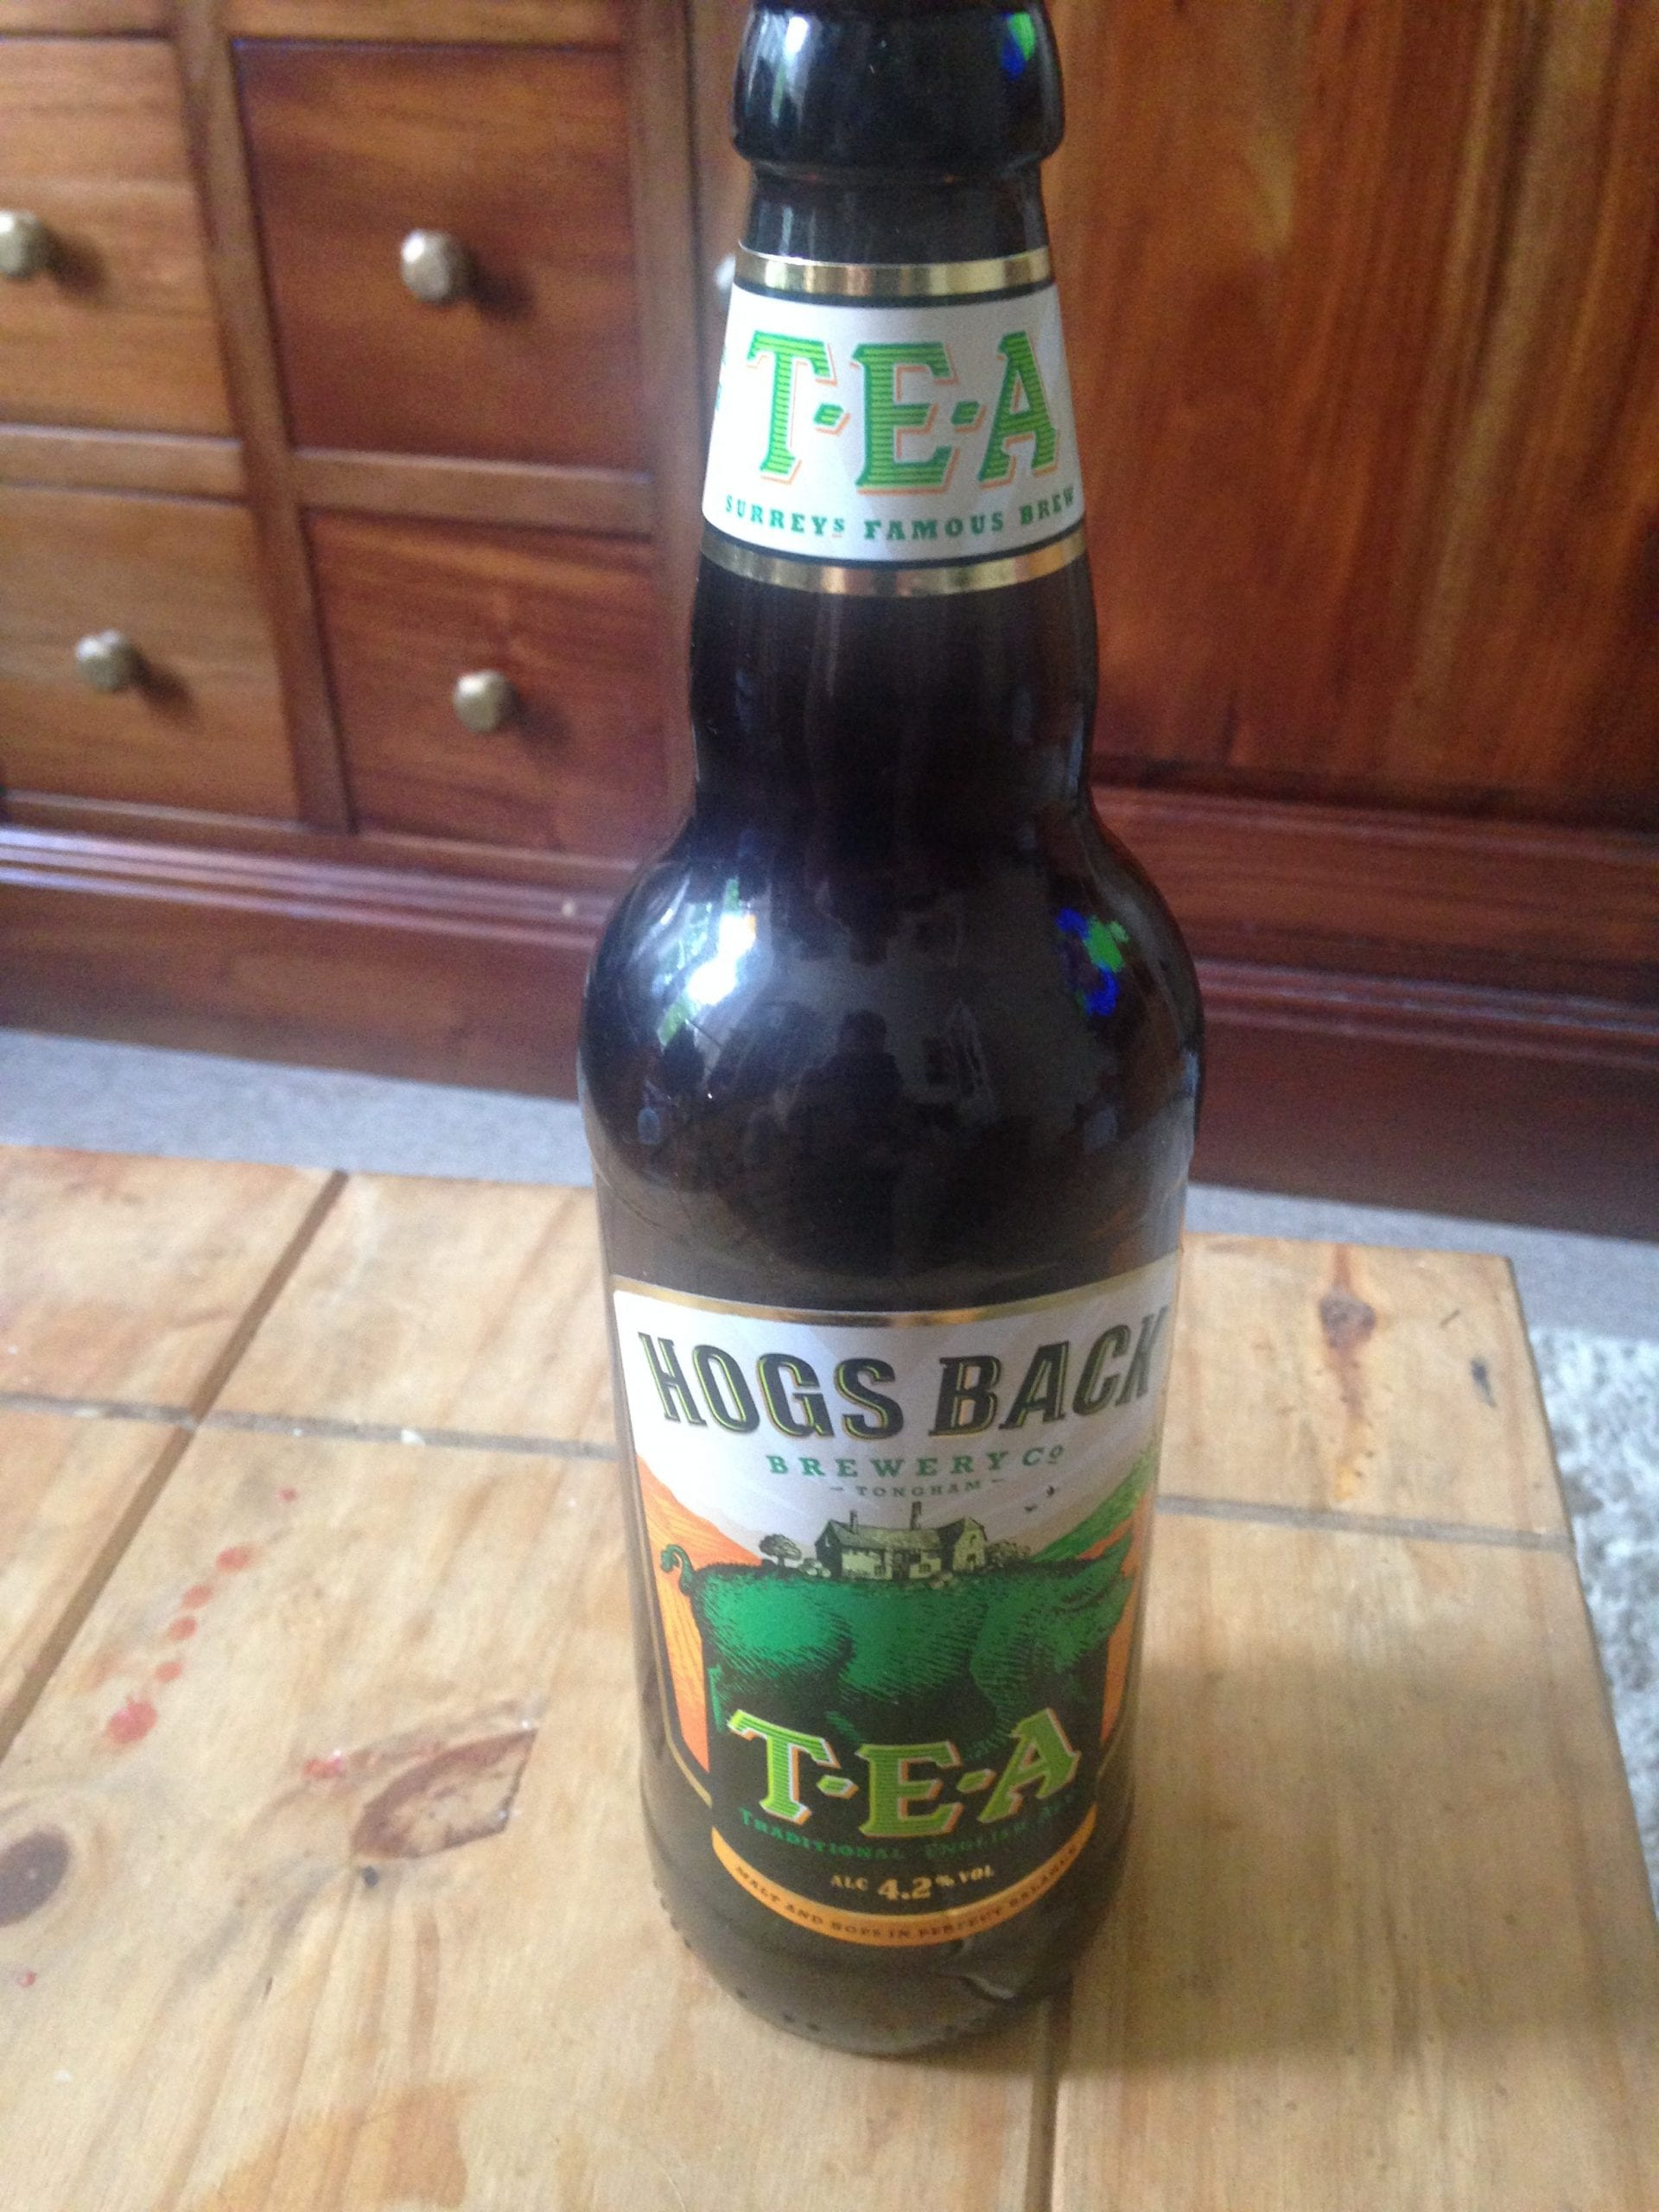 Beer, Hogs Back Brewery, TEA, looking back